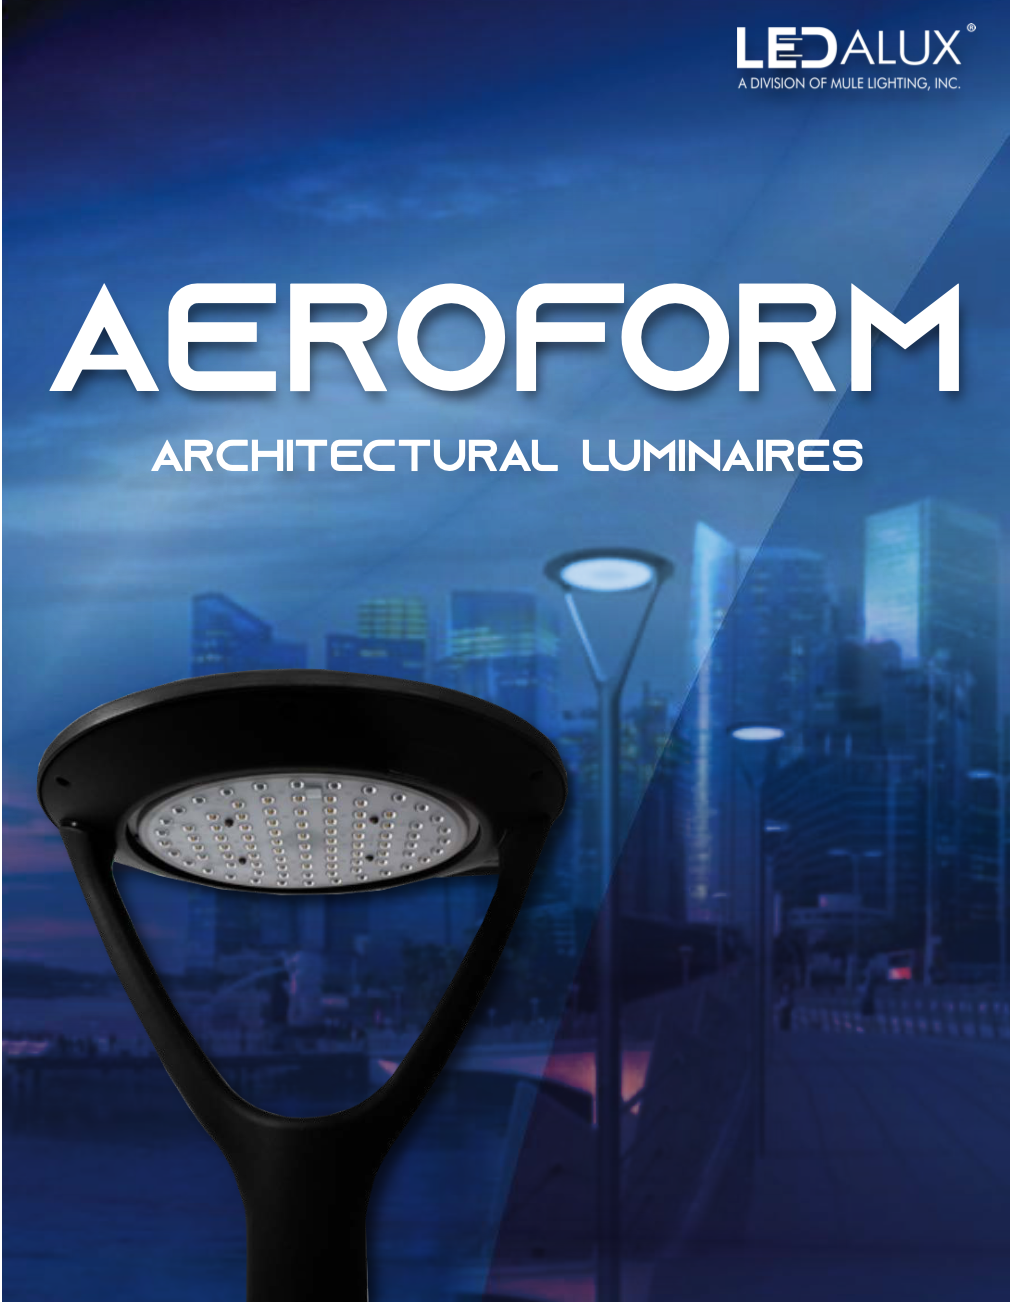 LEDalux AEROFORM – Architectural Luminaries Literature